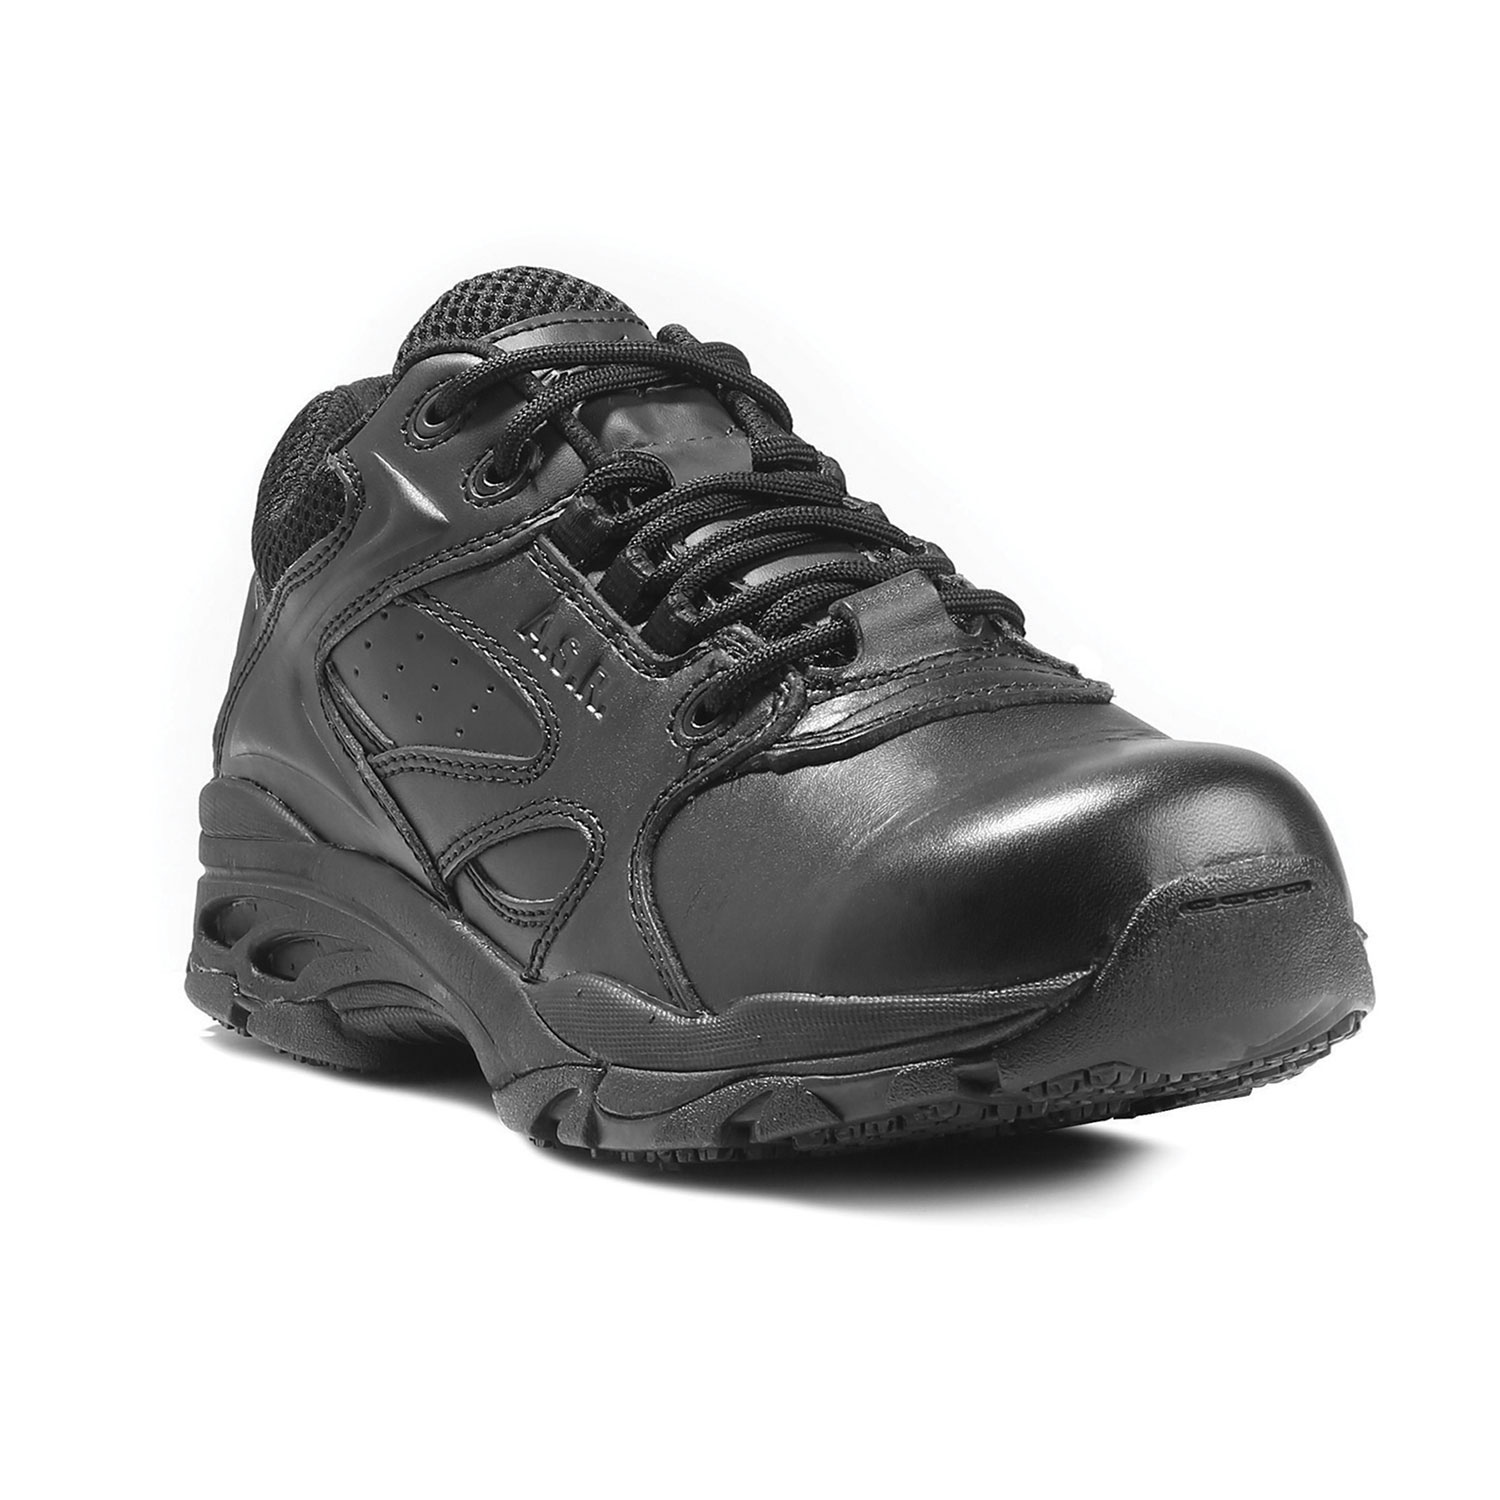 Thorogood ASR Ultra Light Oxford